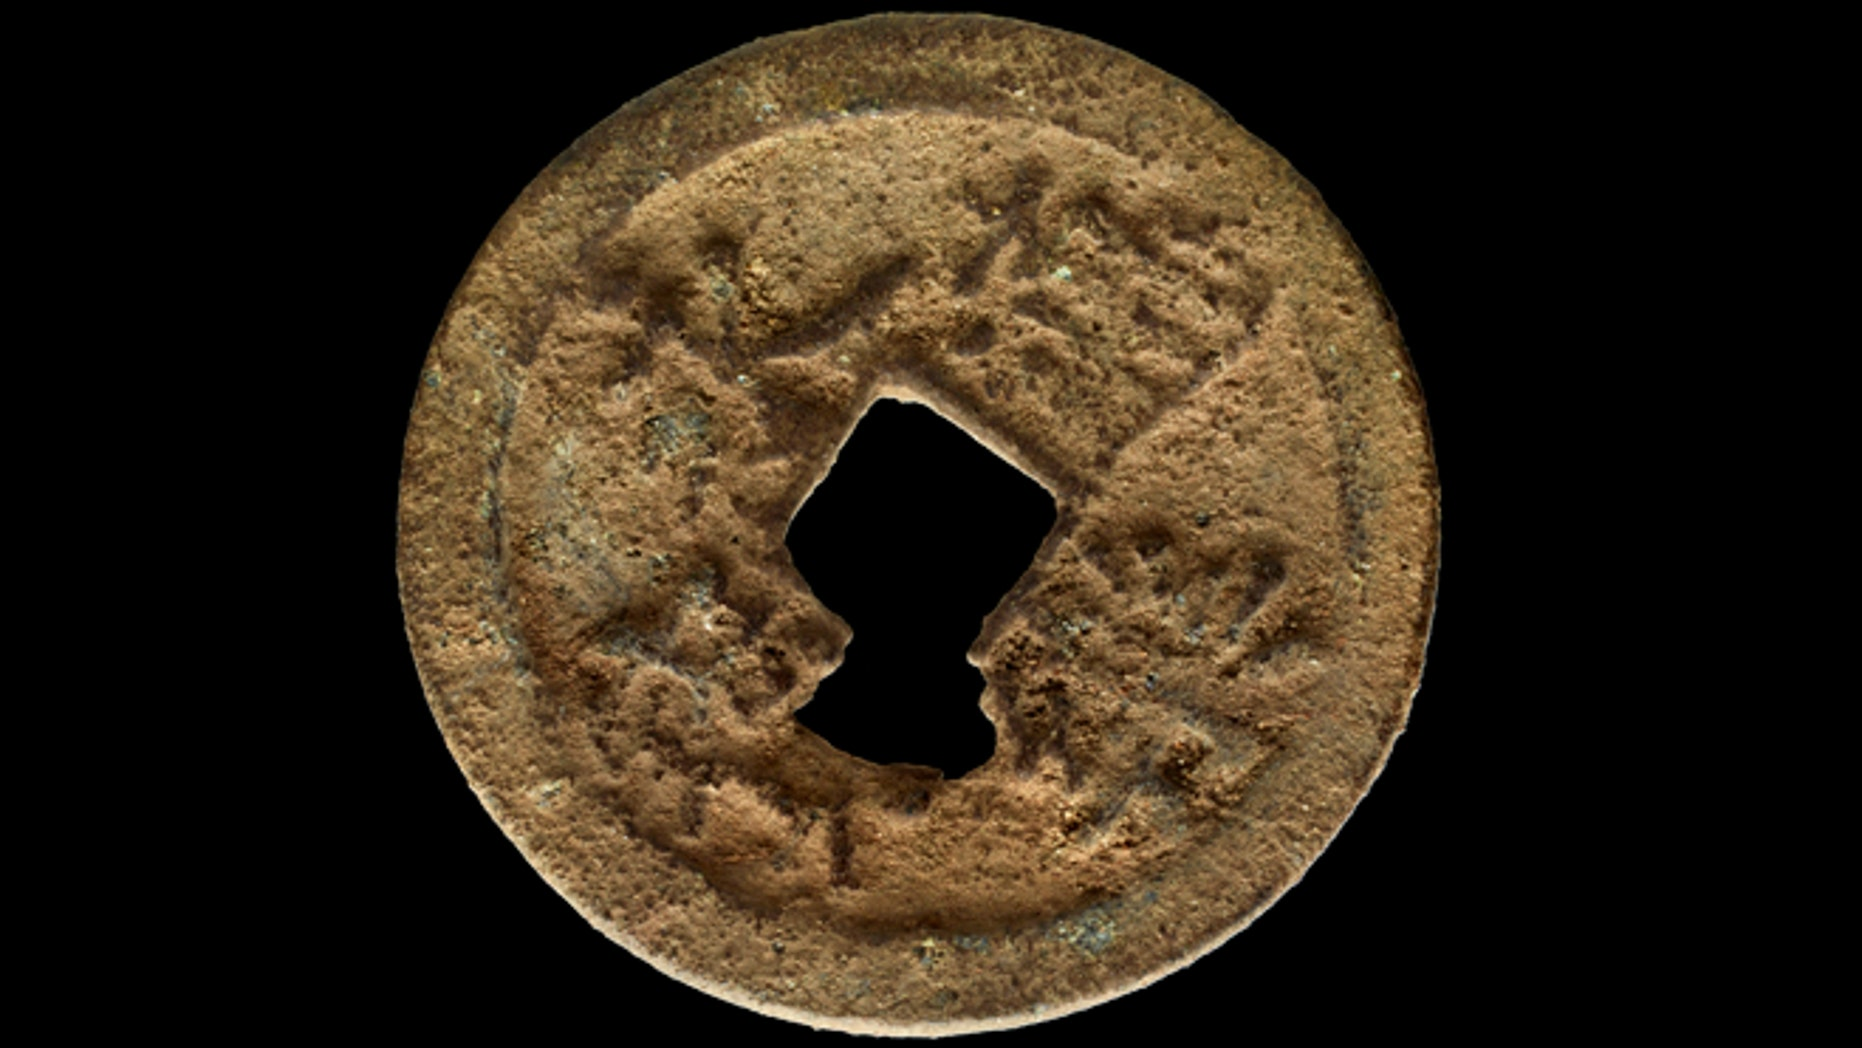 Feb. 8, 2013: A rare, 600-year-old Chinese coin that scientists from Illinois discovered on the Kenyan island of Manda. The museum announced the discovery Wednesday, March 13.